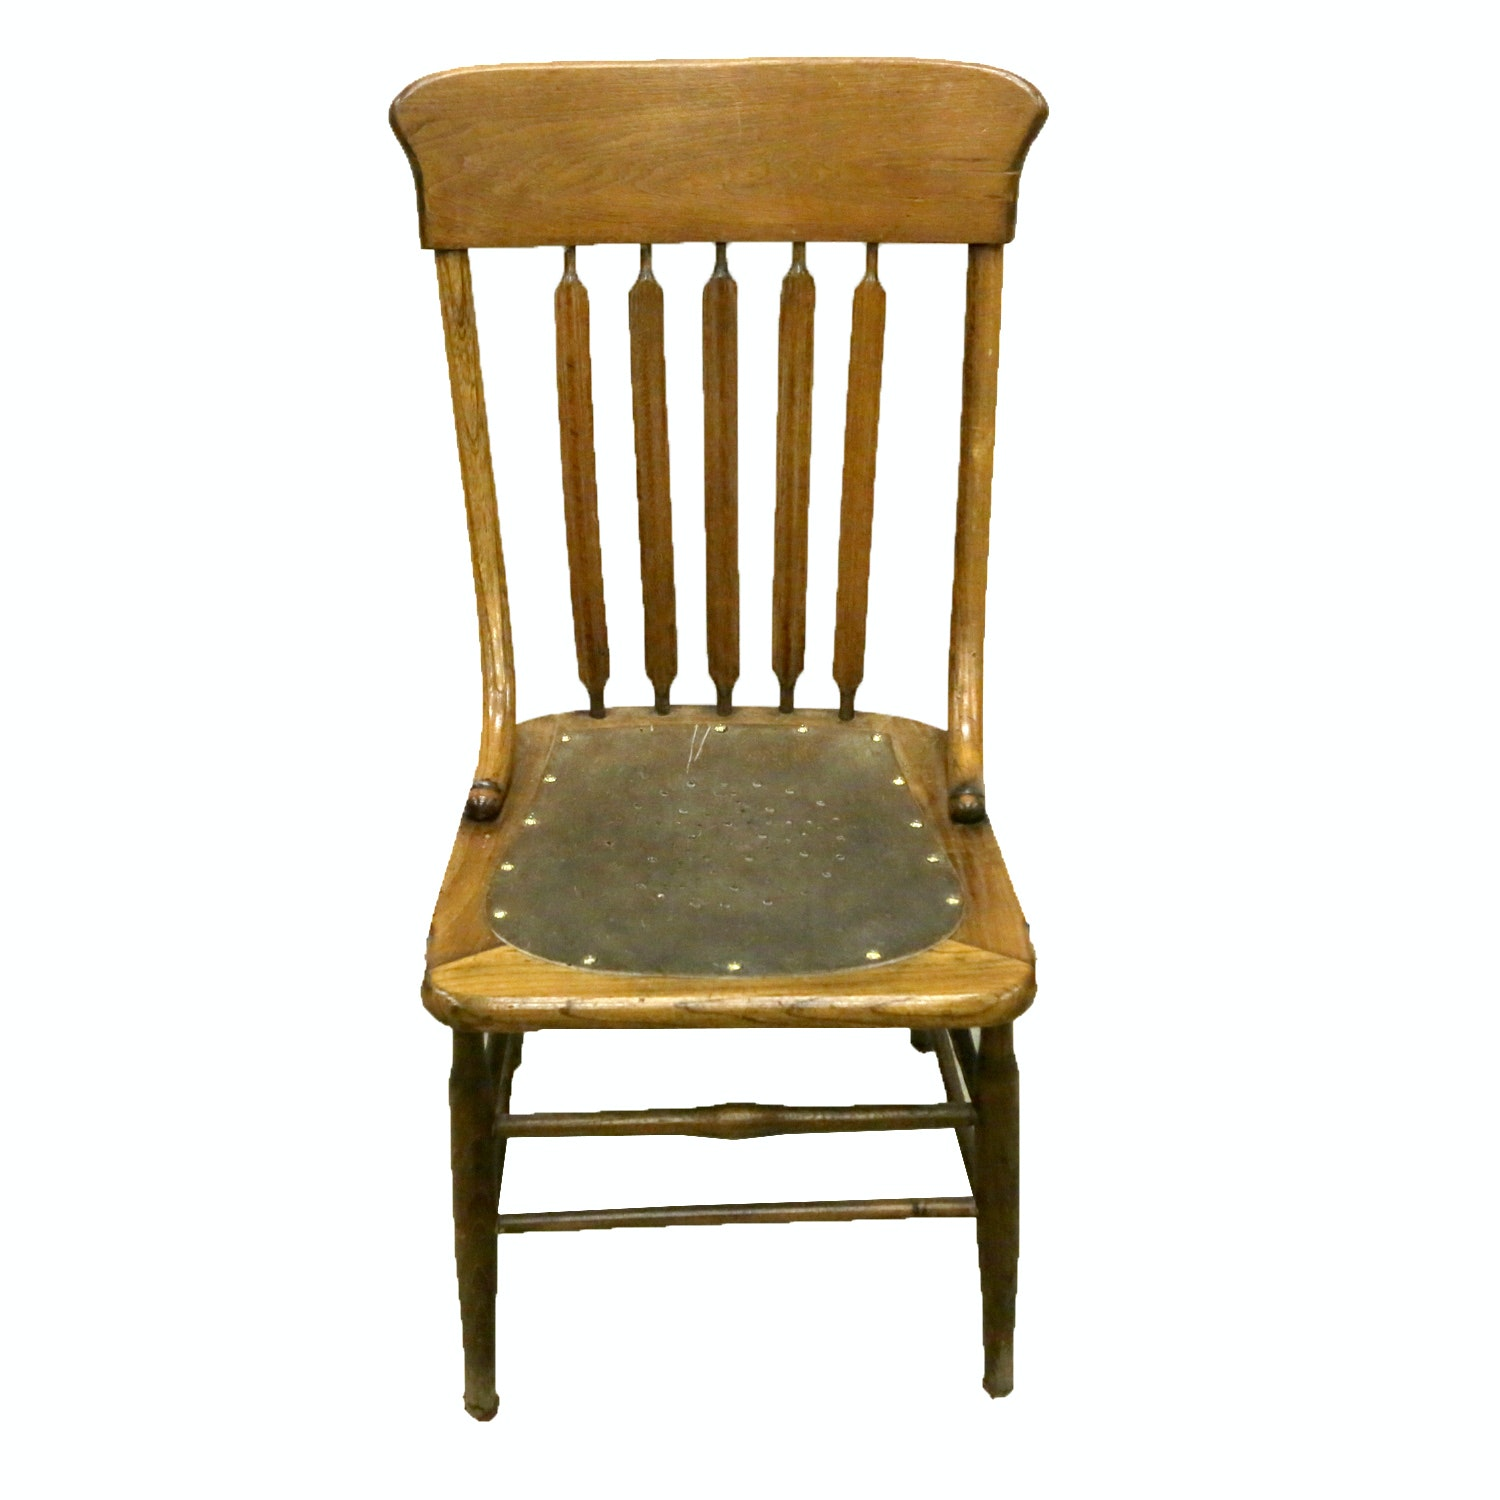 Vintage Side Chair with Leather Seat Pad